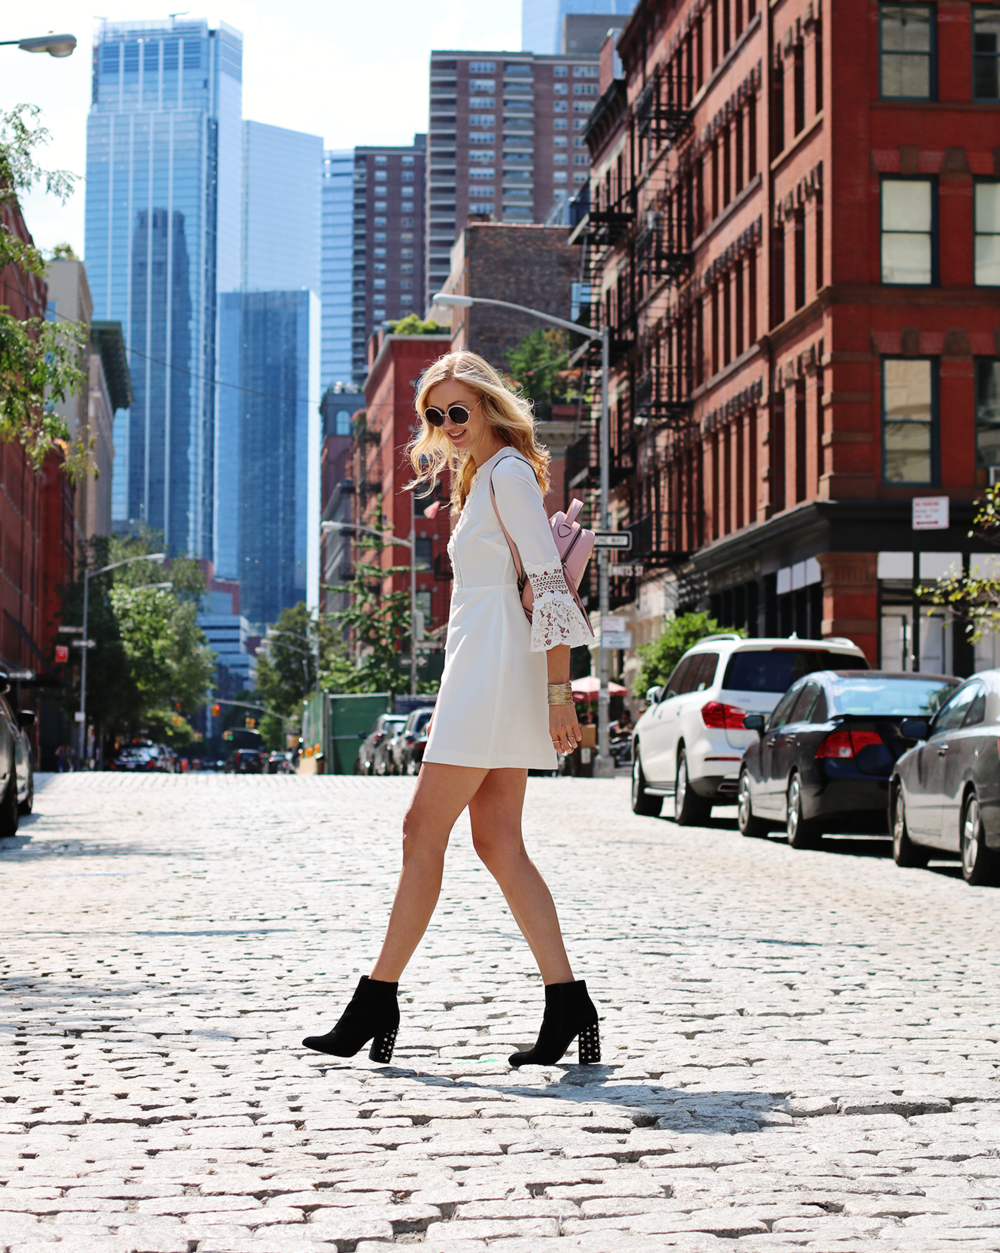 steve-madden-black-boots-wayf-dress-new-york-street-style.png